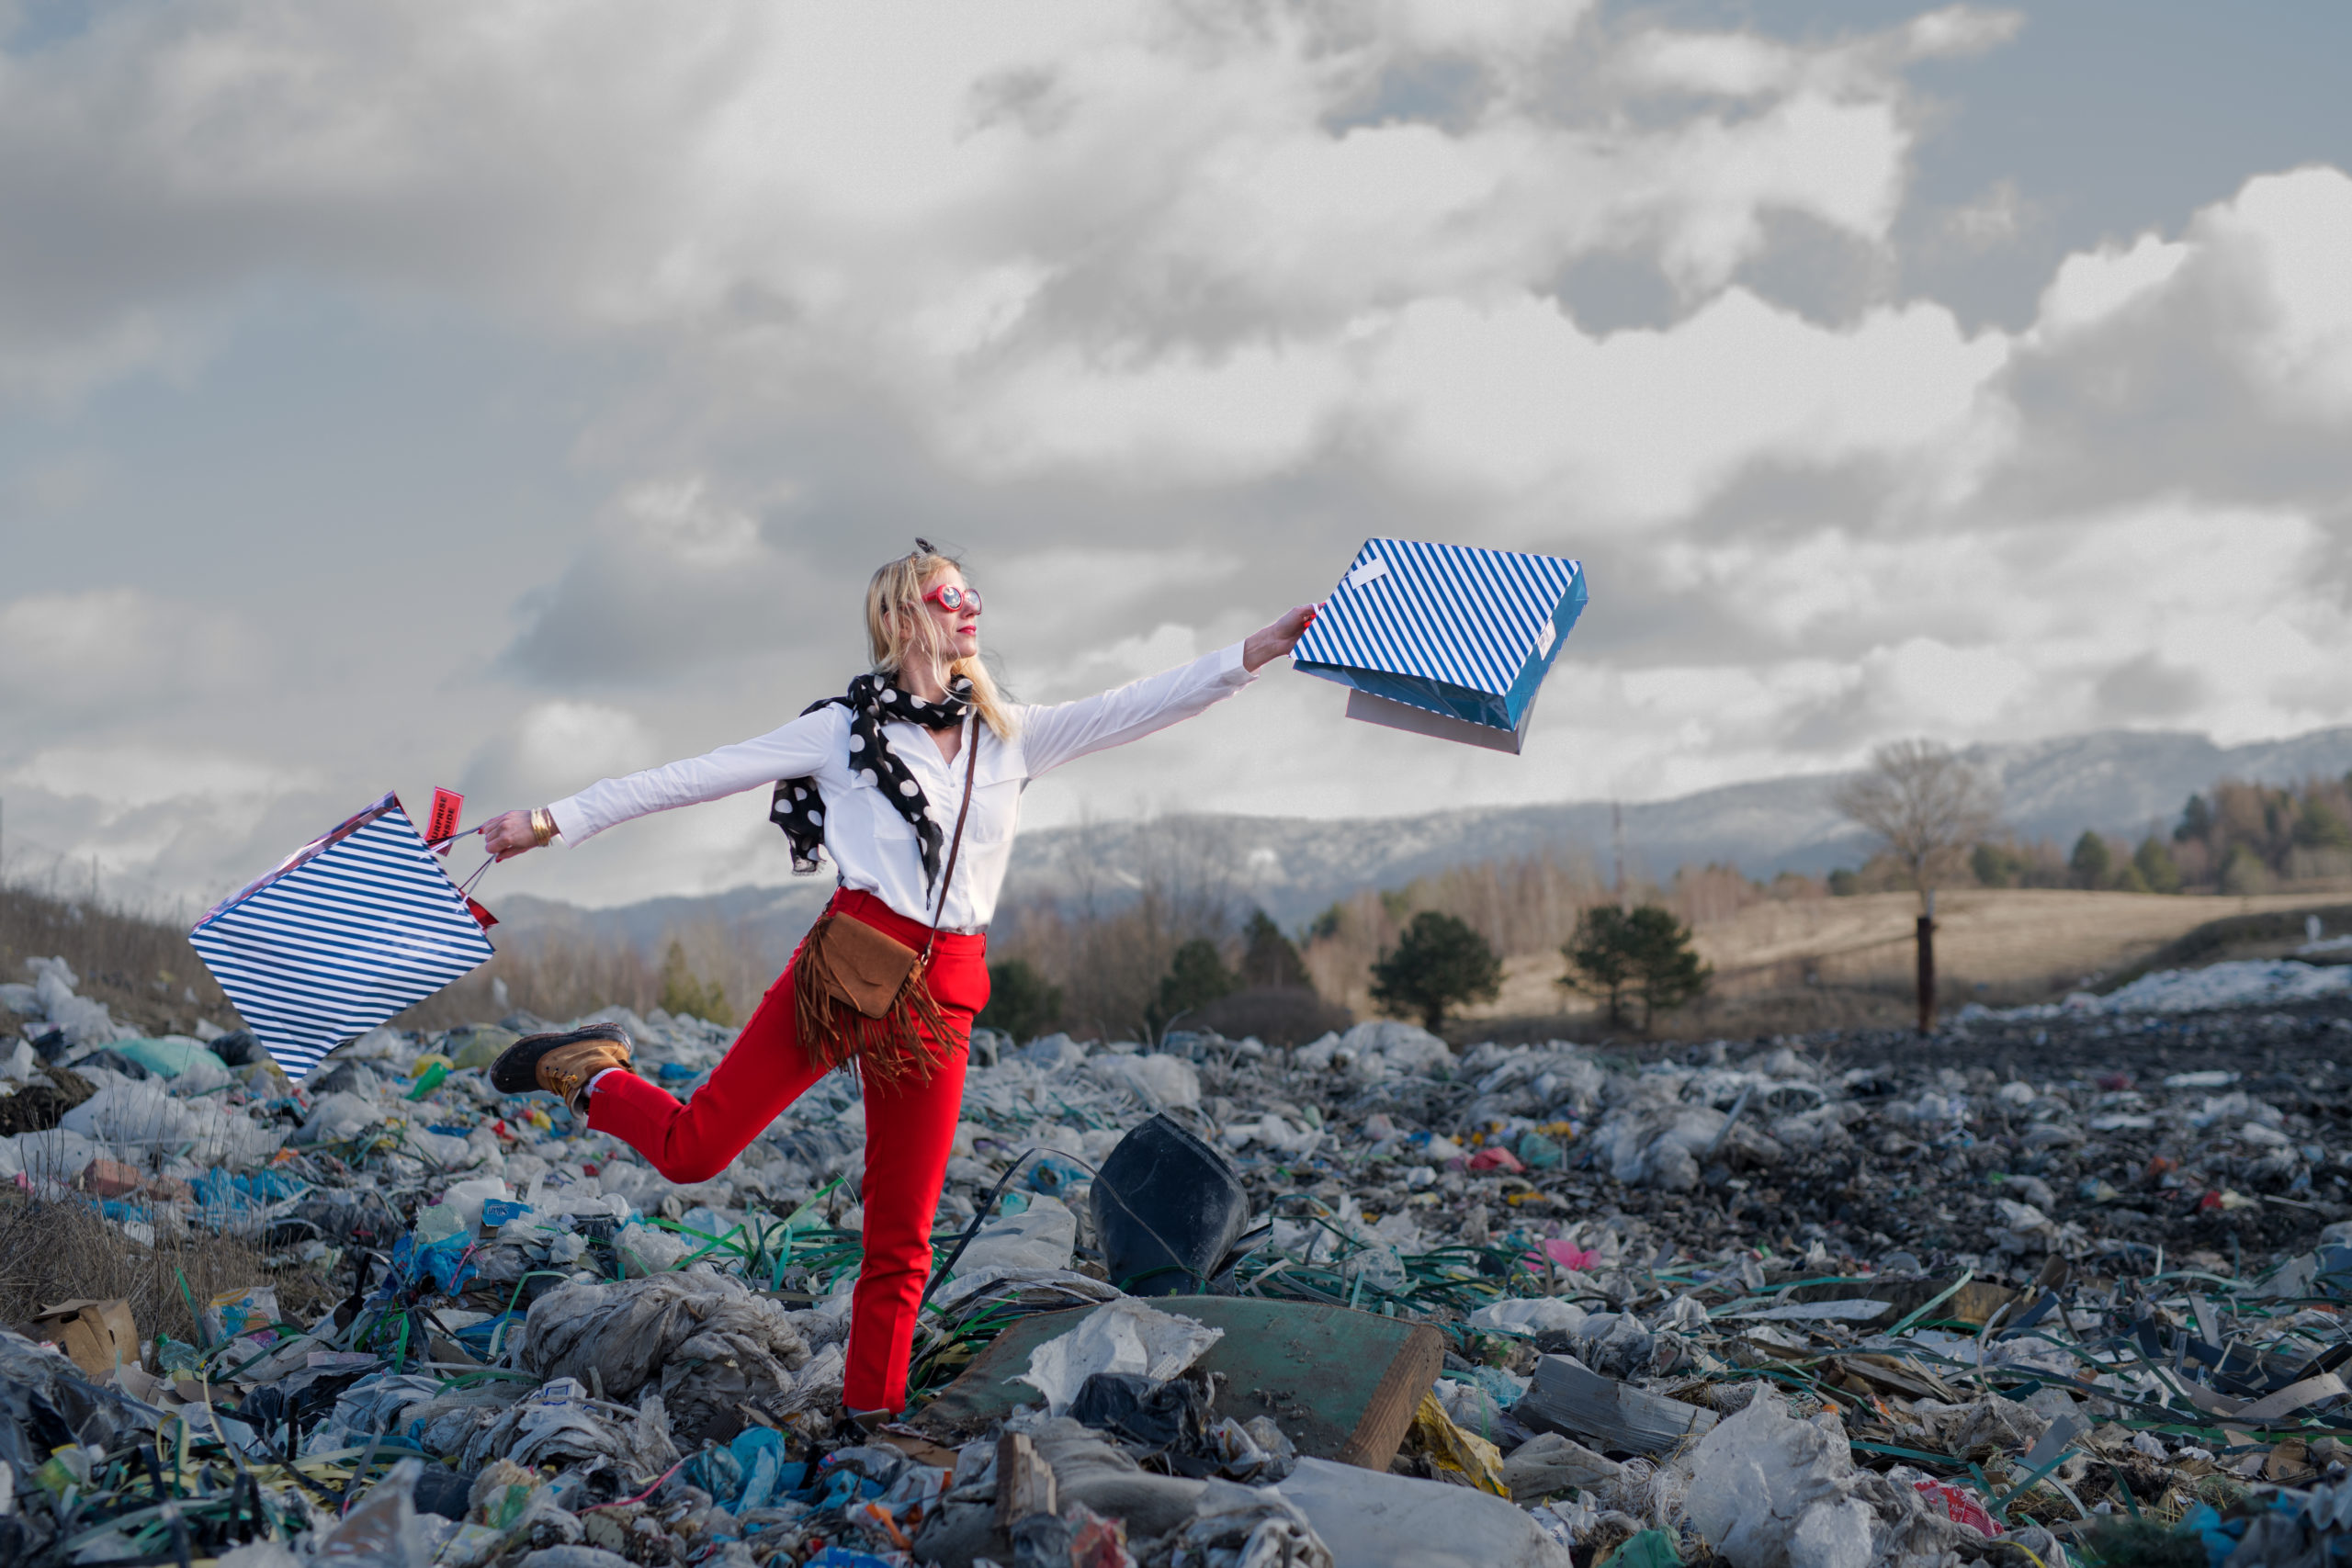 © Depositphotos. 85% of textiles end up in landfills or are incinerated, with most of these materials suitable for reuse.